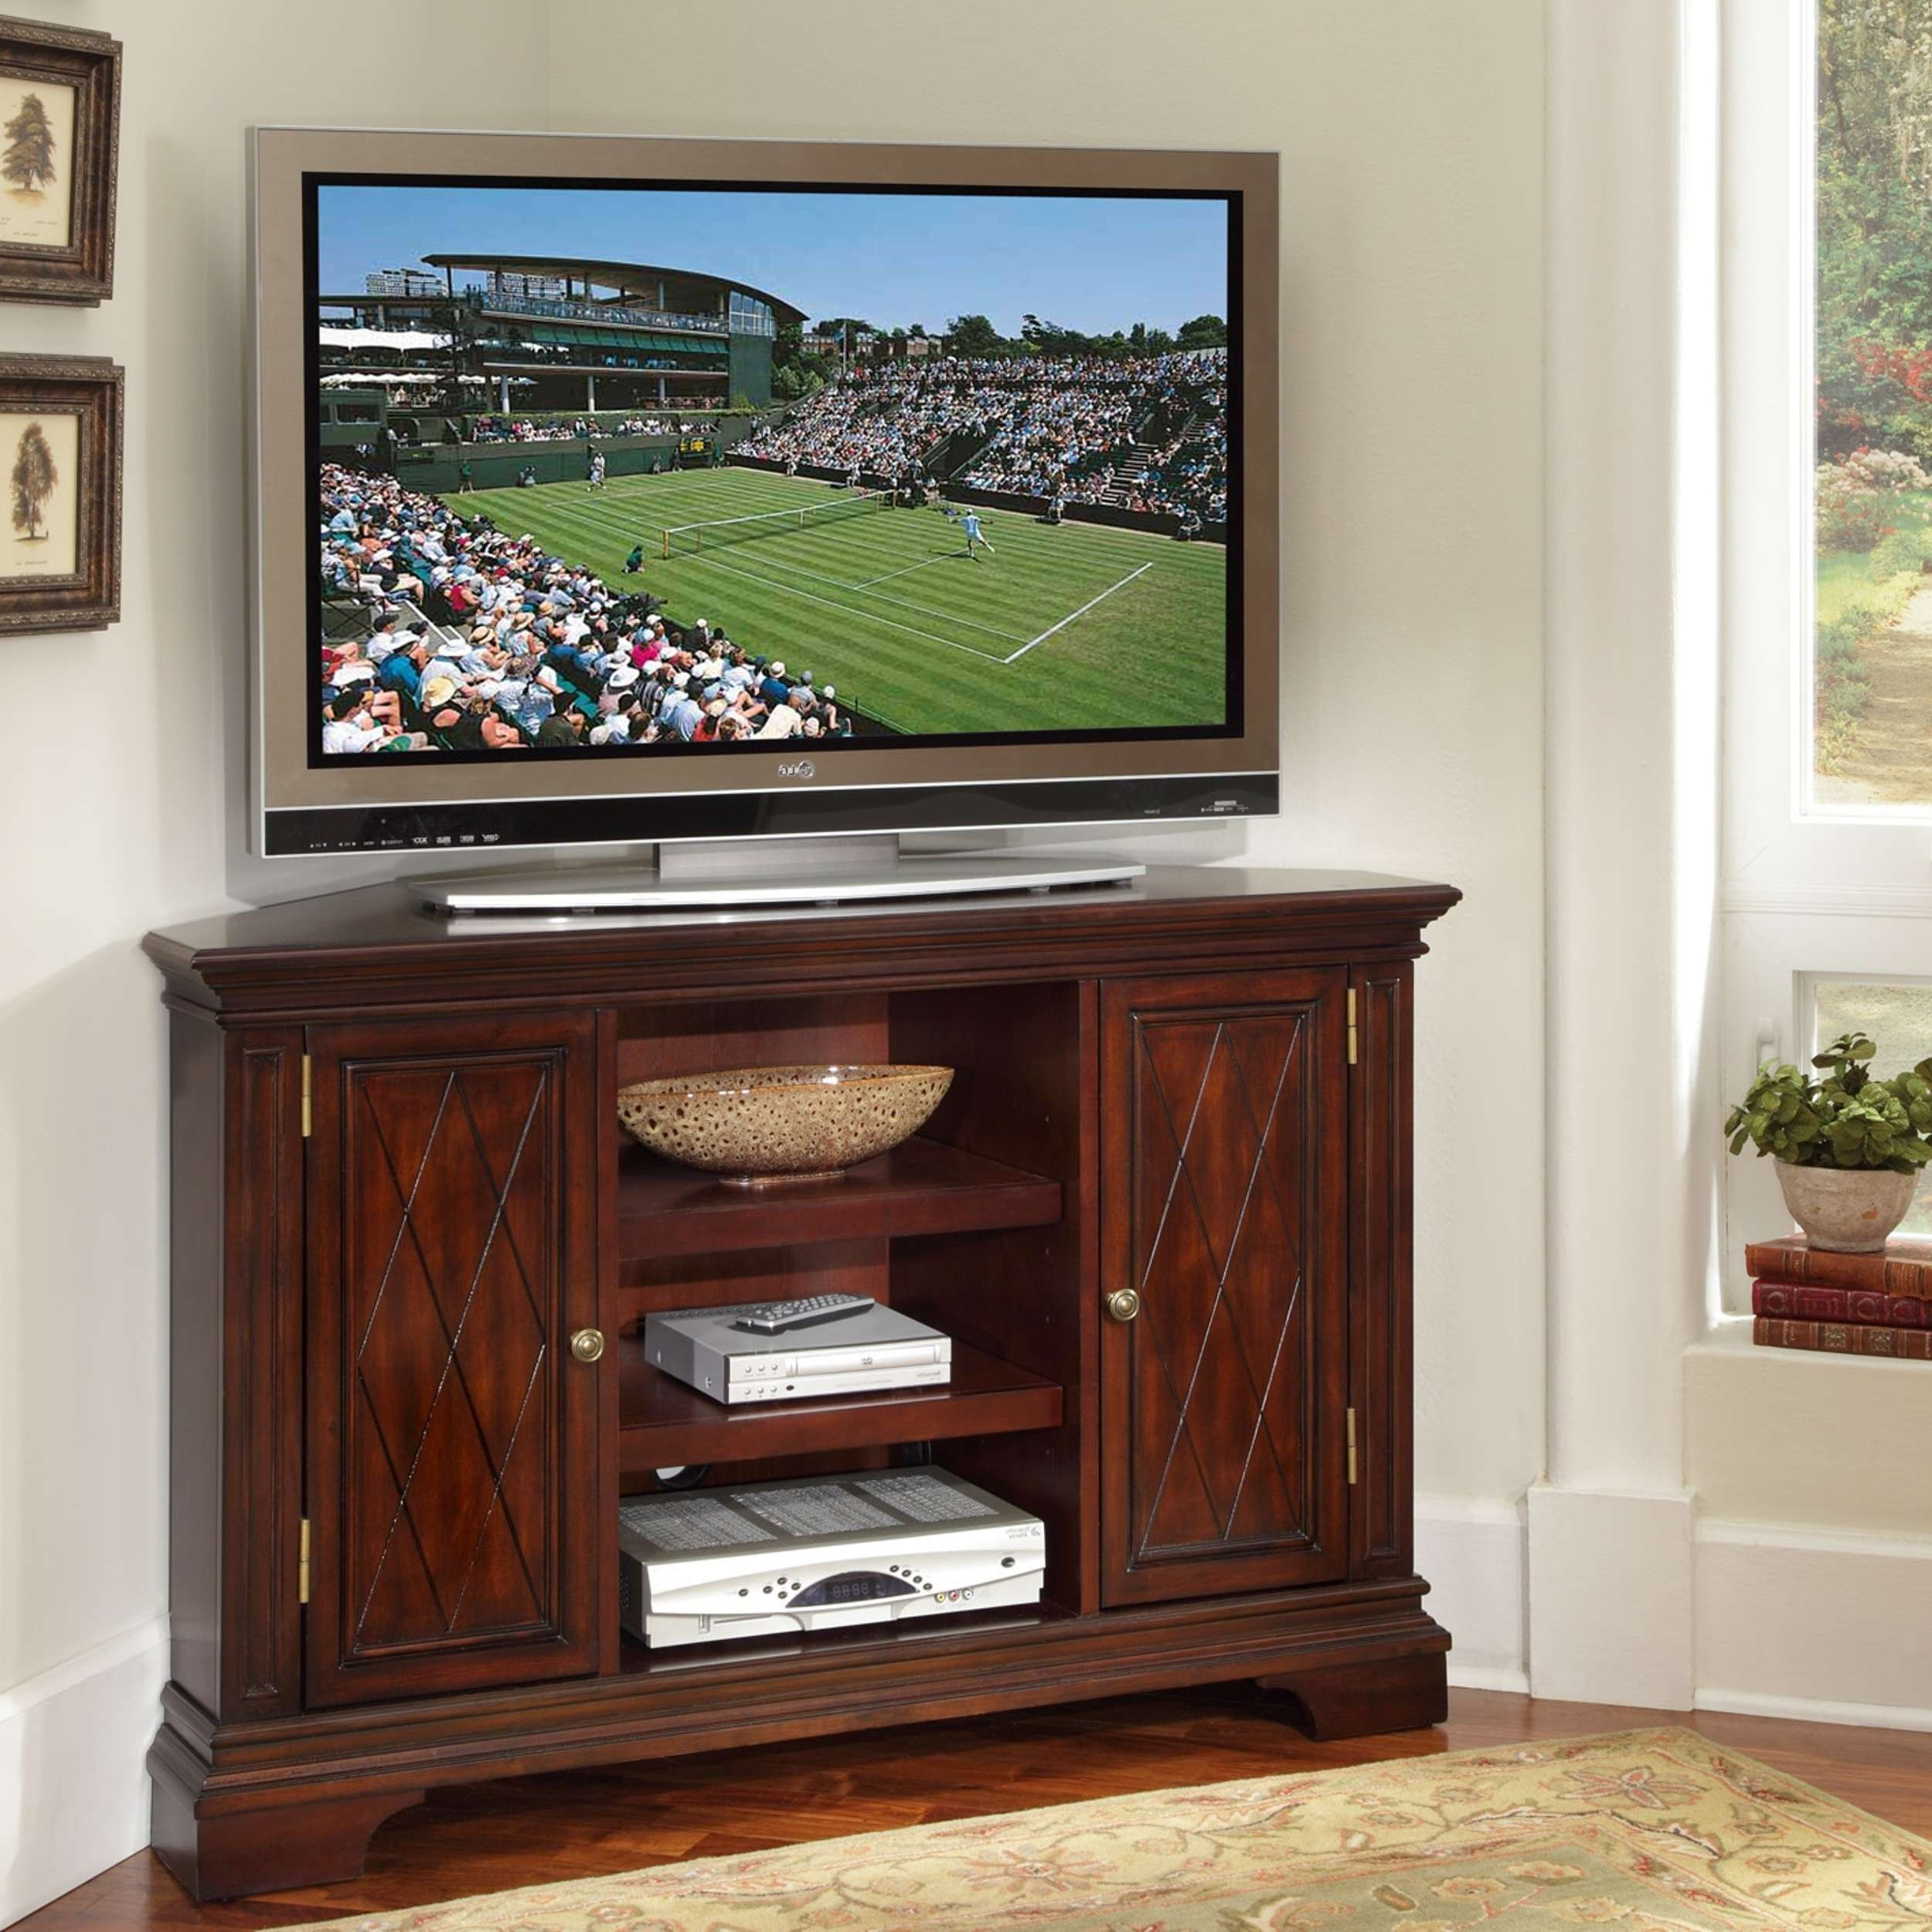 Cherry Wood Tv Stands For Inch Tvs With Cubbies Furniture Flat Within Cherry Wood Tv Cabinets (View 3 of 20)